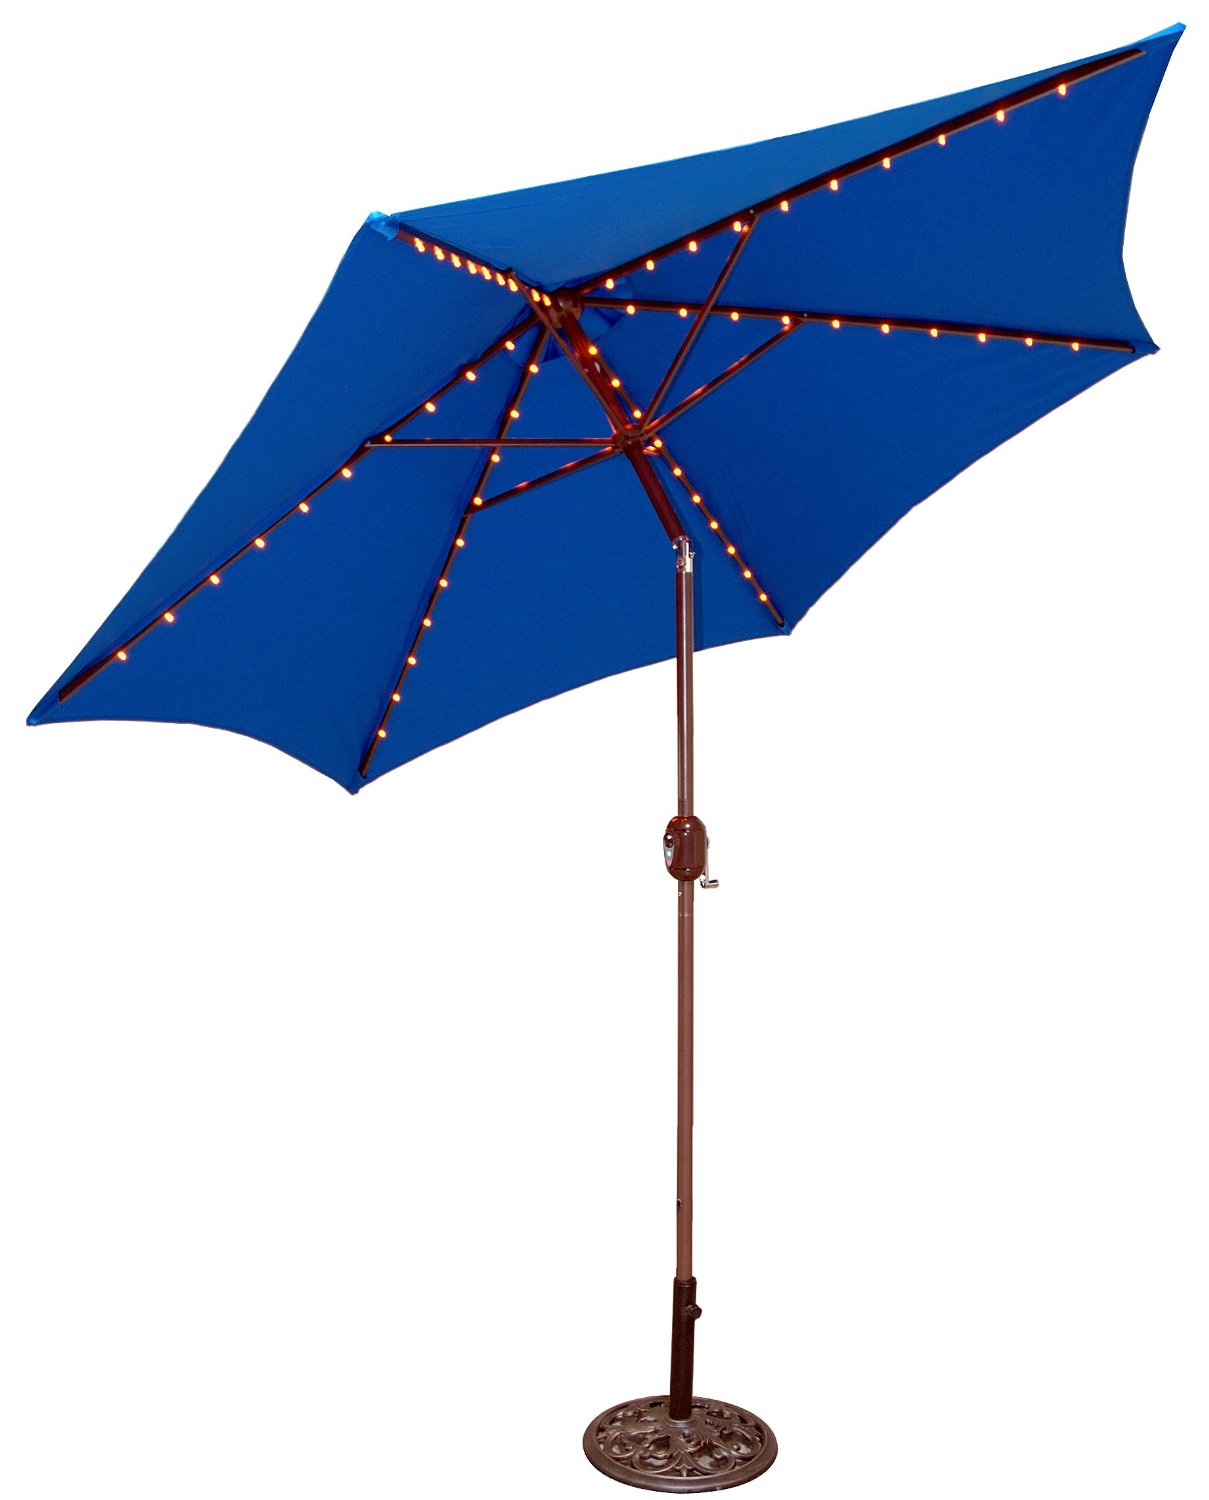 Led Patio Umbrella Reviews: Our Review Of The 10 Best Patio Umbrellas